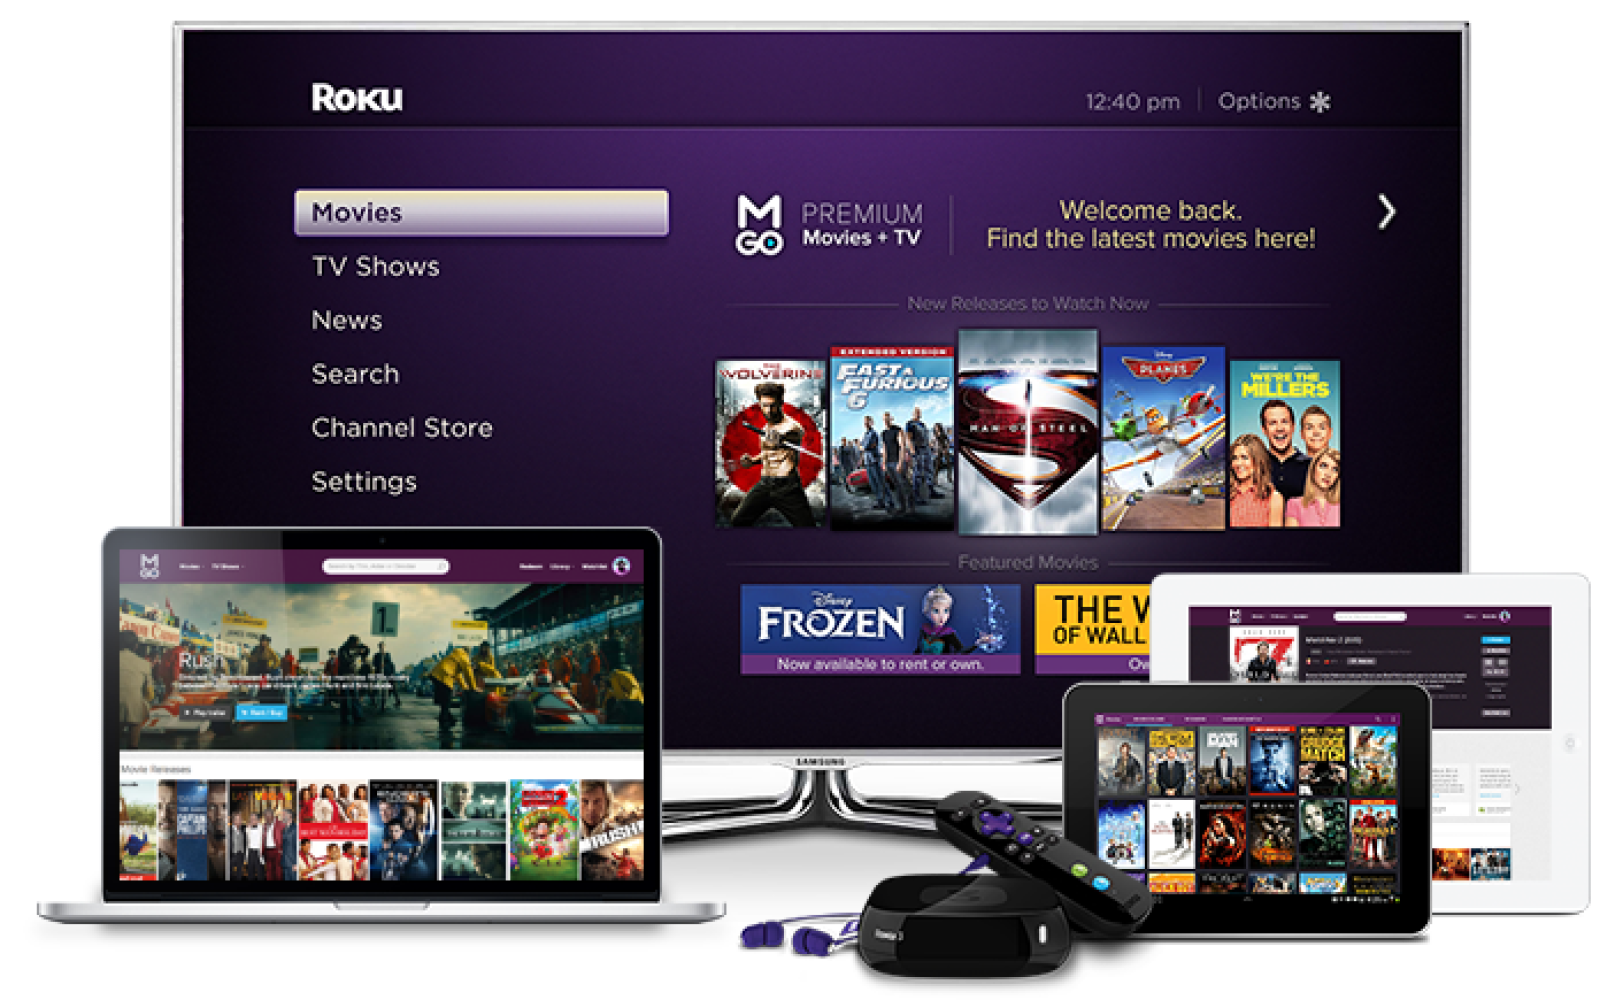 Free movie rental from M-GO: Available for iOS, Android, & Roku (~$5 value)